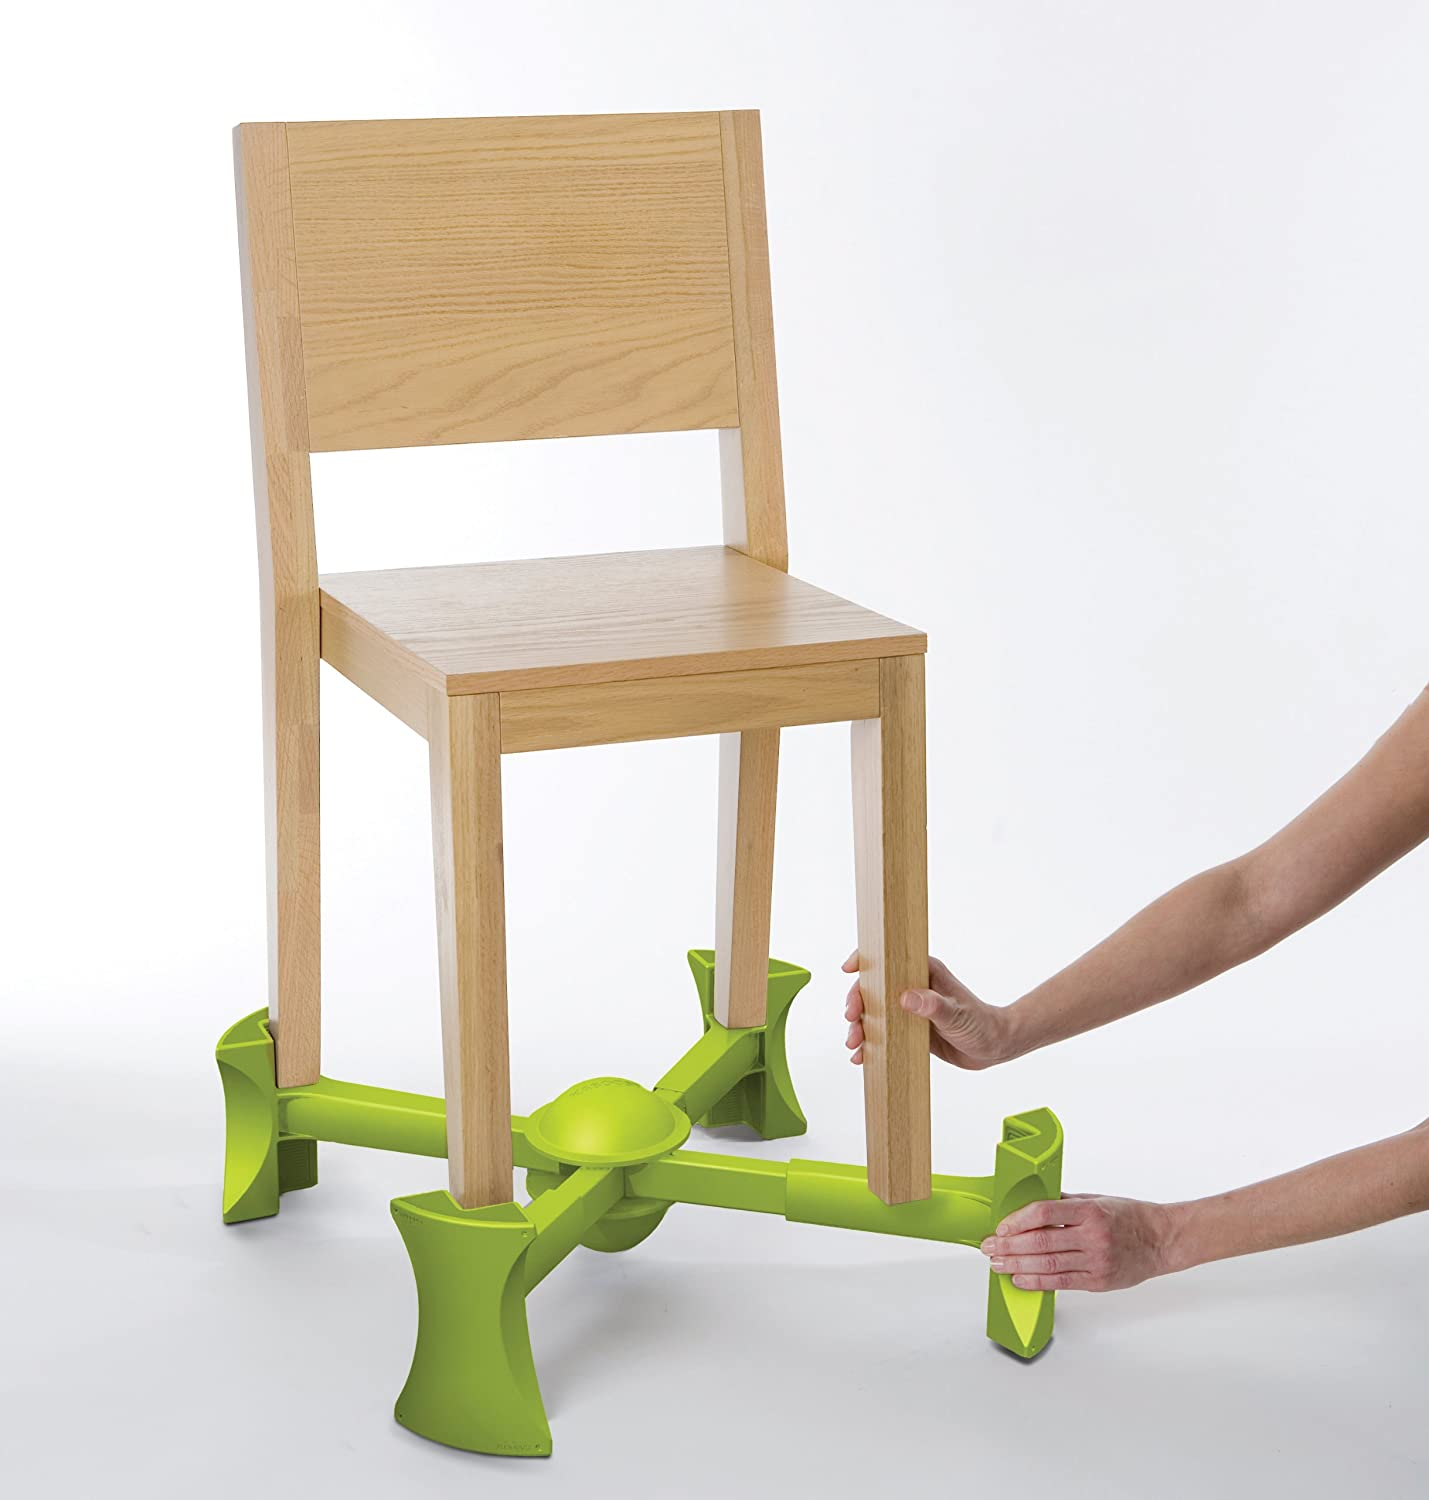 Amazon Kaboost Booster Seat for Dining Green Goes Under